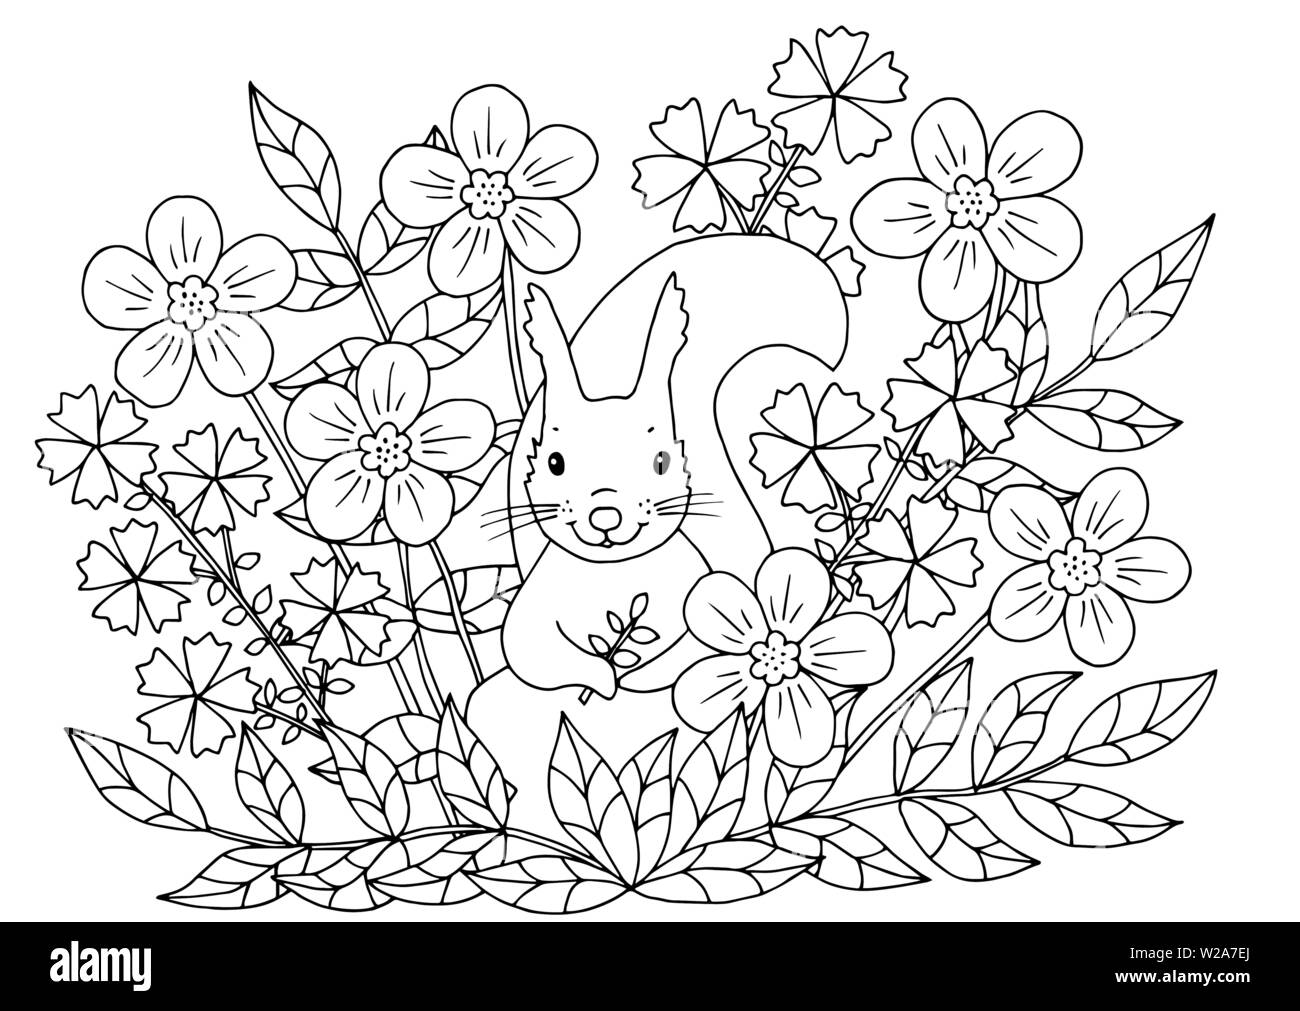 Abstract coloring page with summer flowers and cute squirrel, for kids and  adults Stock Vector Image & Art - Alamy